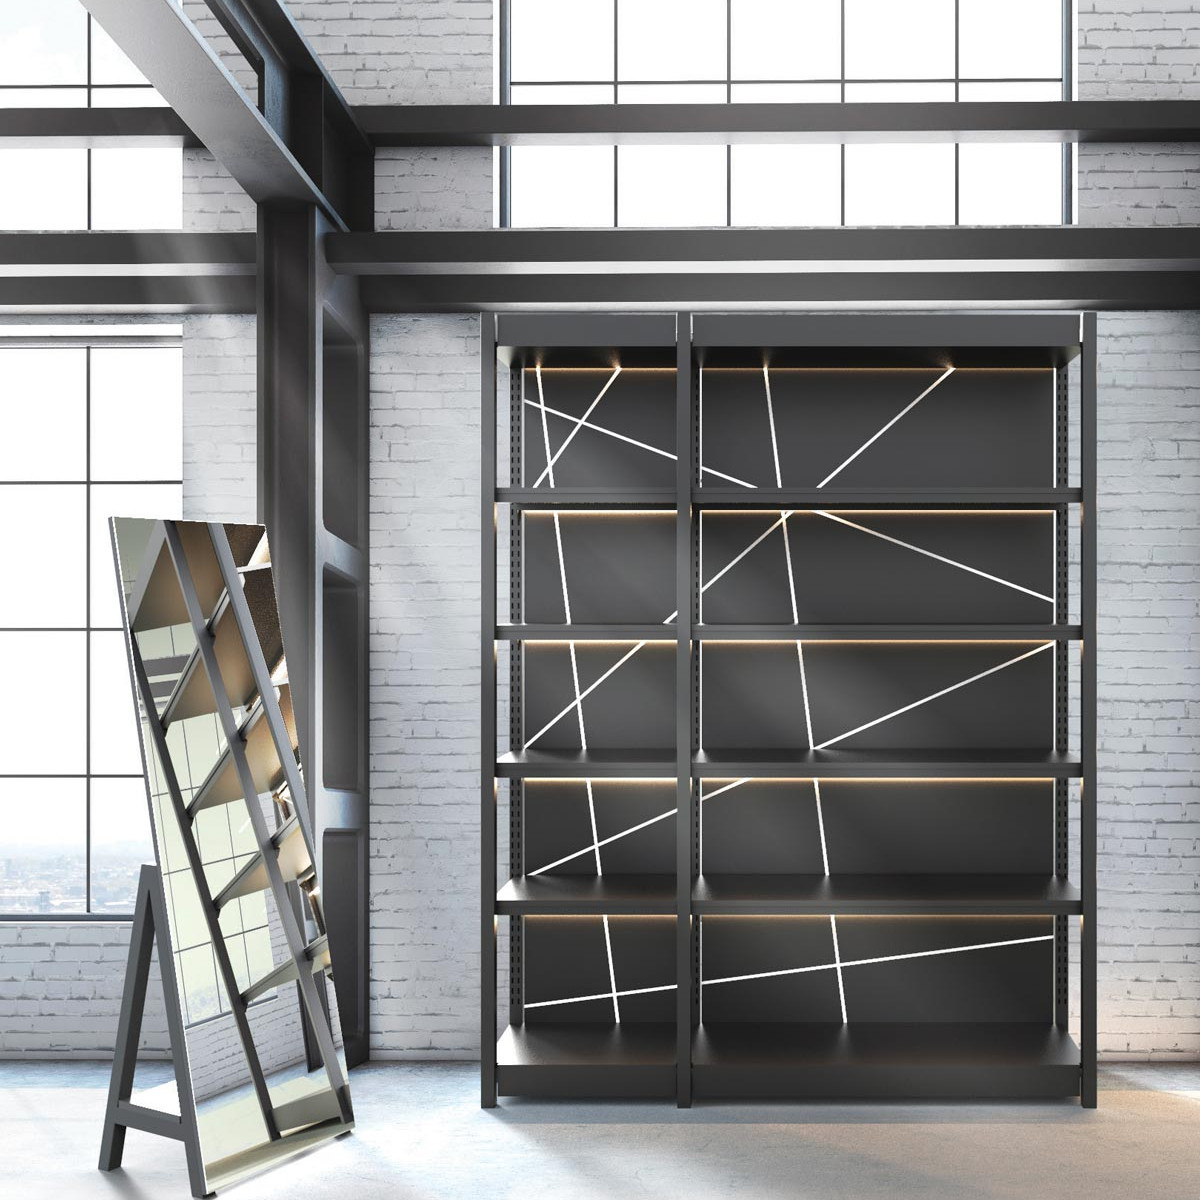 Line 9 <p><strong>Free standing mirror and Modular shelving system</strong></p> <p>Free standing mirror in matt black with back shelf.<br /> Modular shelving system / metal elements in matt black / shelves, platform and top in matt black chipboard / back panel in matt black chipboard with UV printed decoration / lightning system on top and shelves integrated on the metal structure.</p>